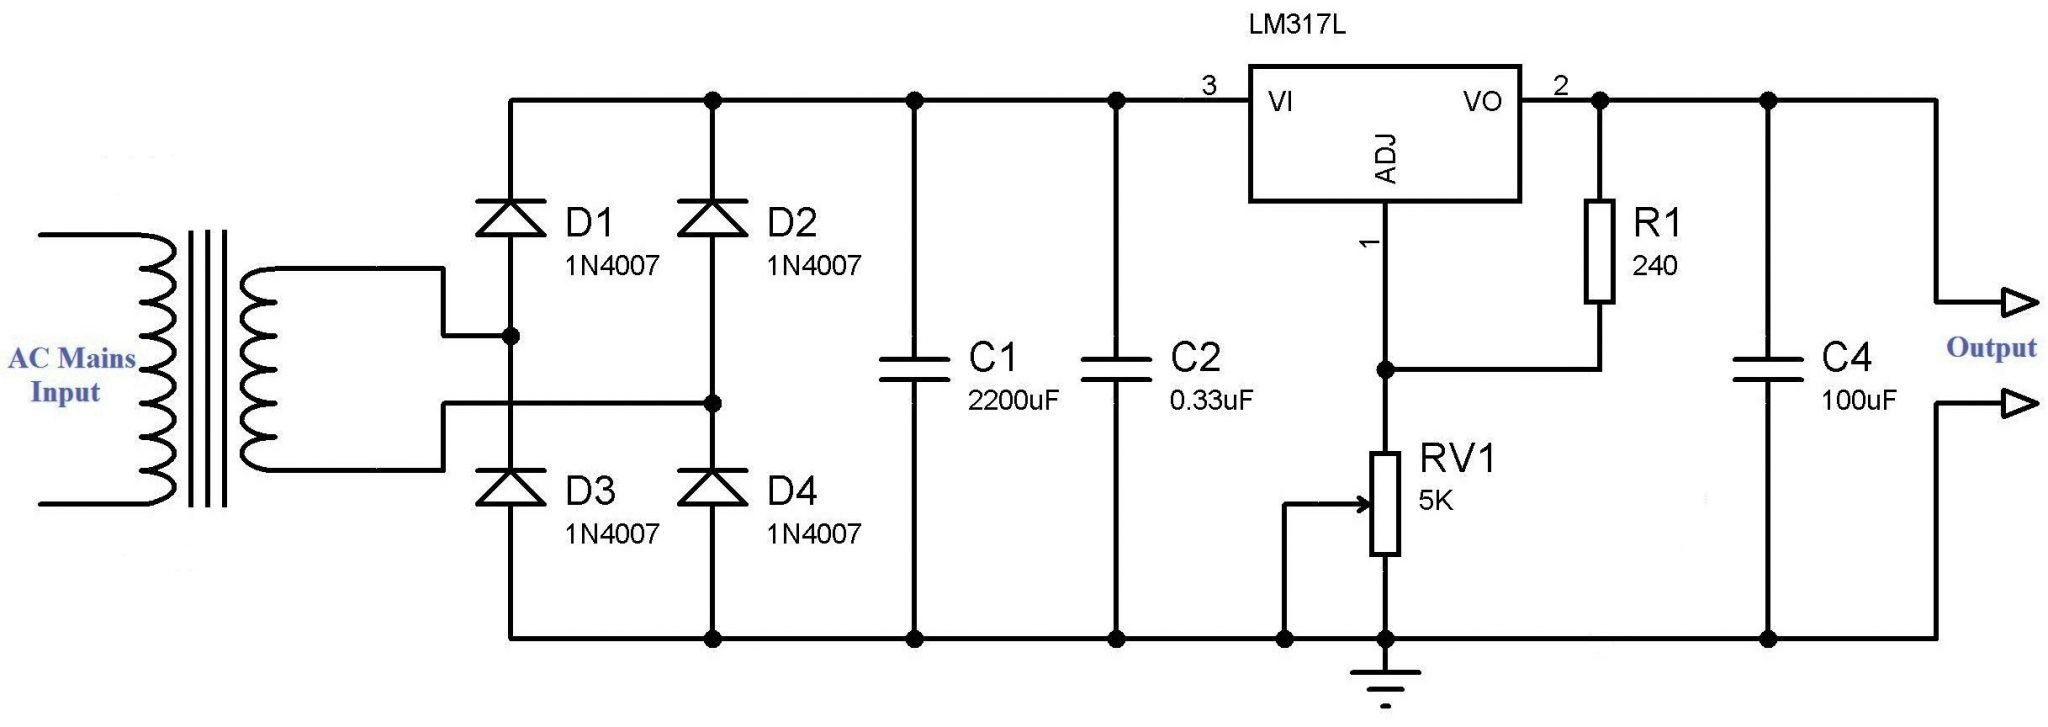 Variable power supply using lm317 voltage regulator simple variable power supply using lm317 pooptronica